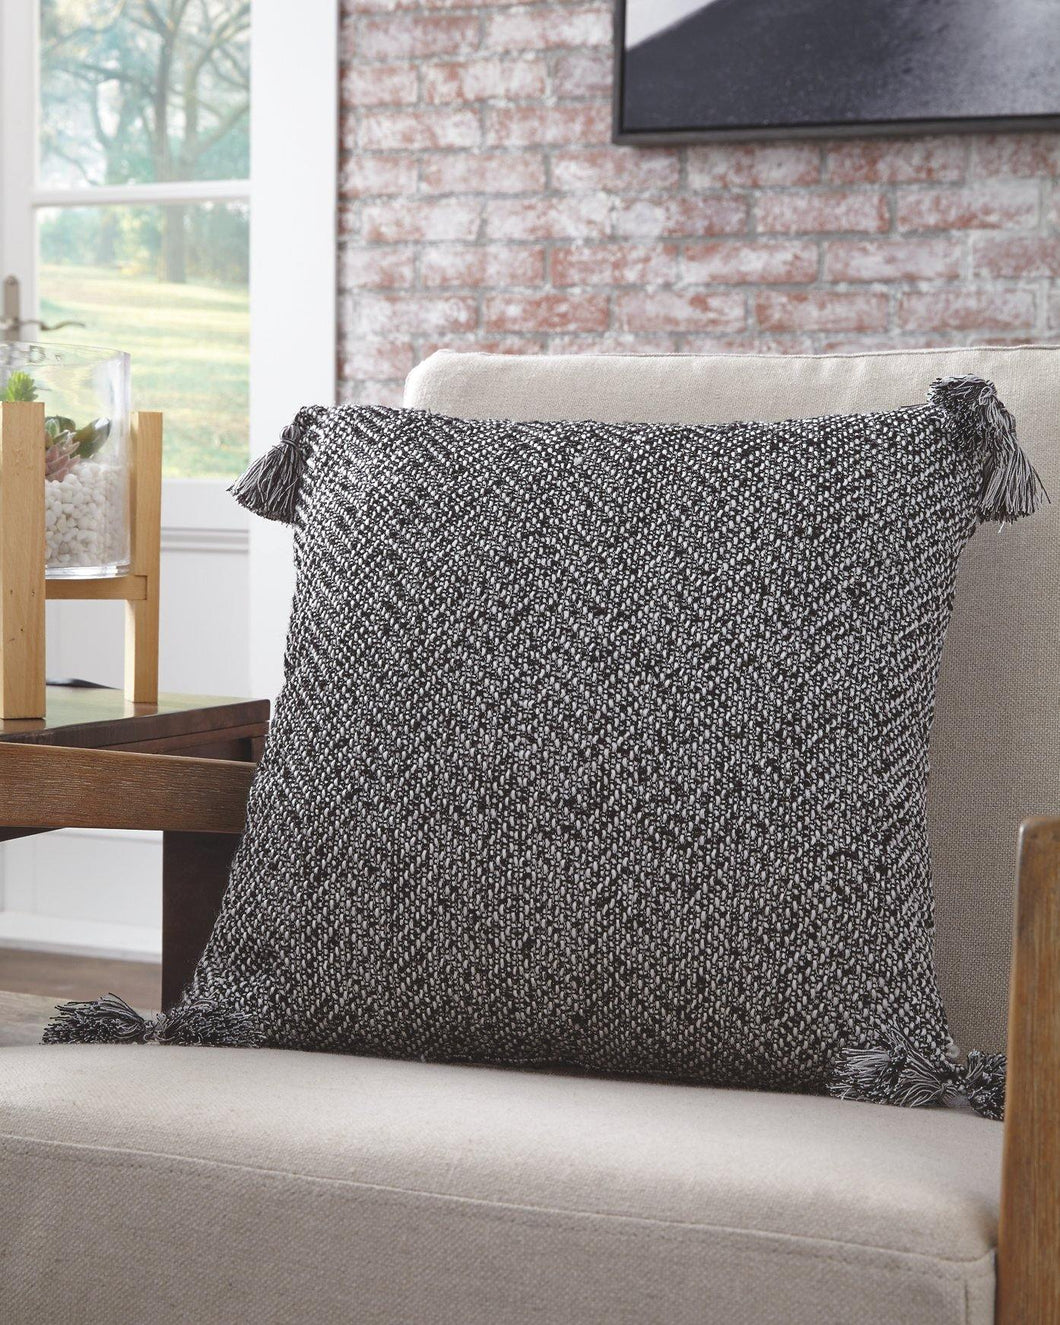 Riehl Pillow Set of 4 A1000482 By Ashley Furniture from sofafair